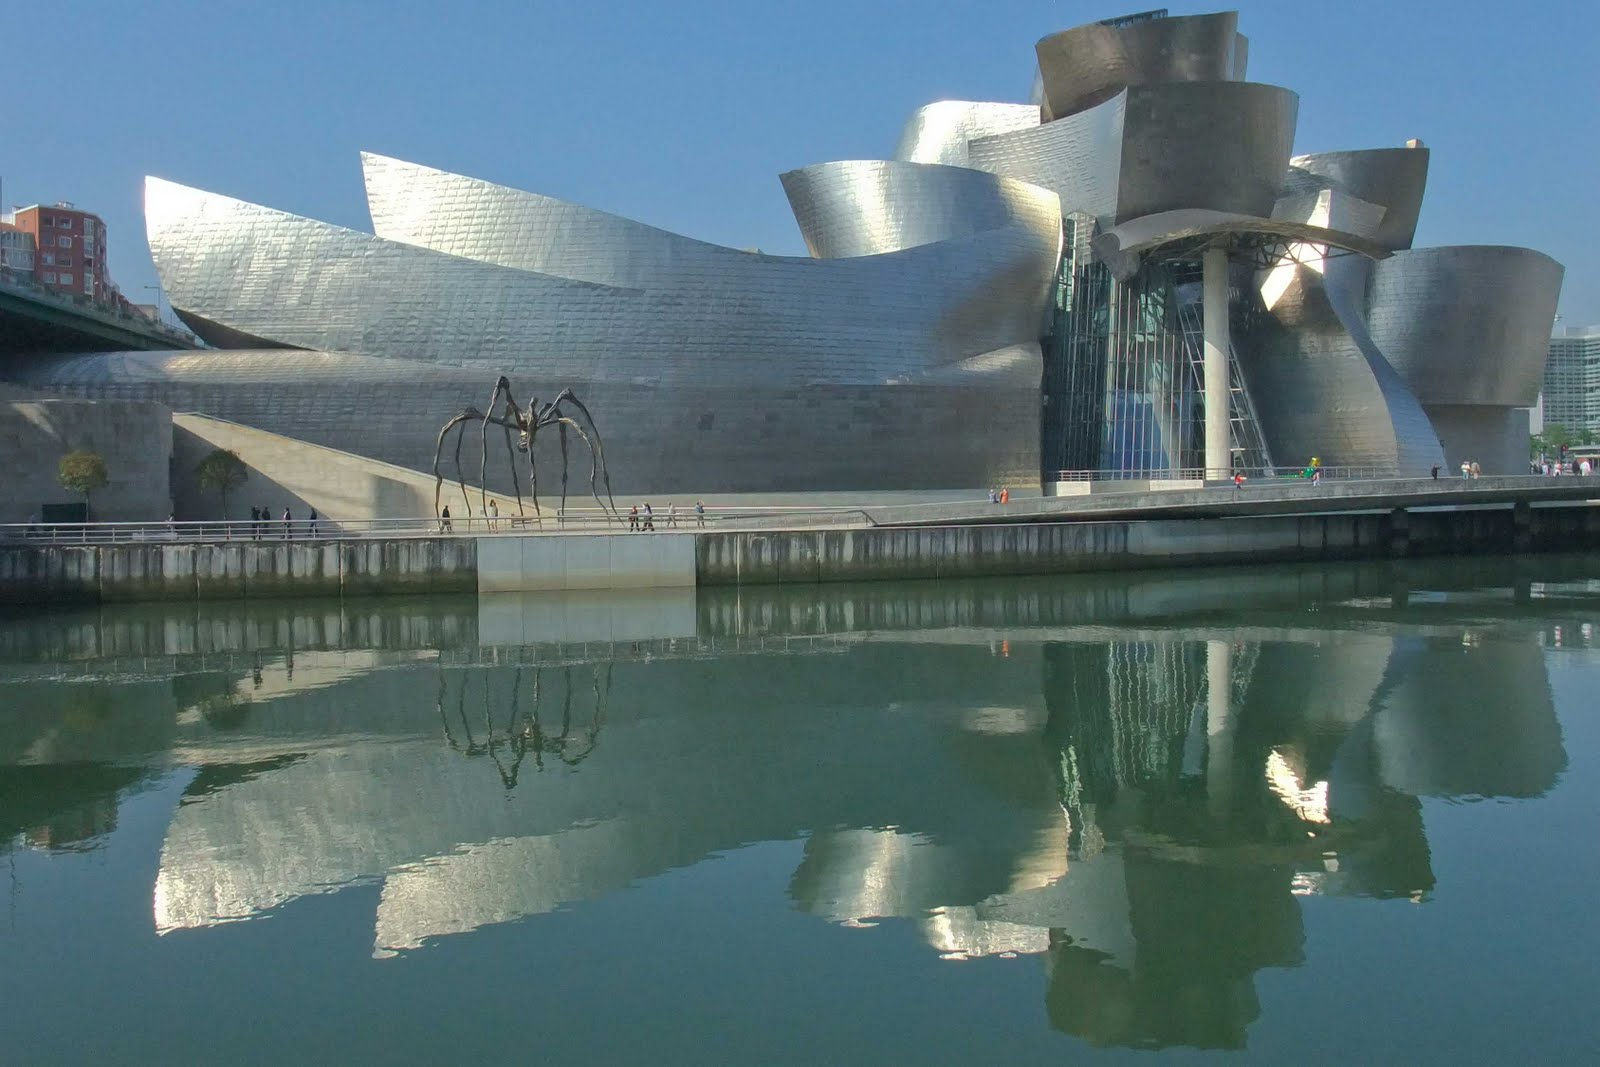 Guggenheim museum bilbao spain aeworldmap com over 2 400 posts - Steel framing espana ...